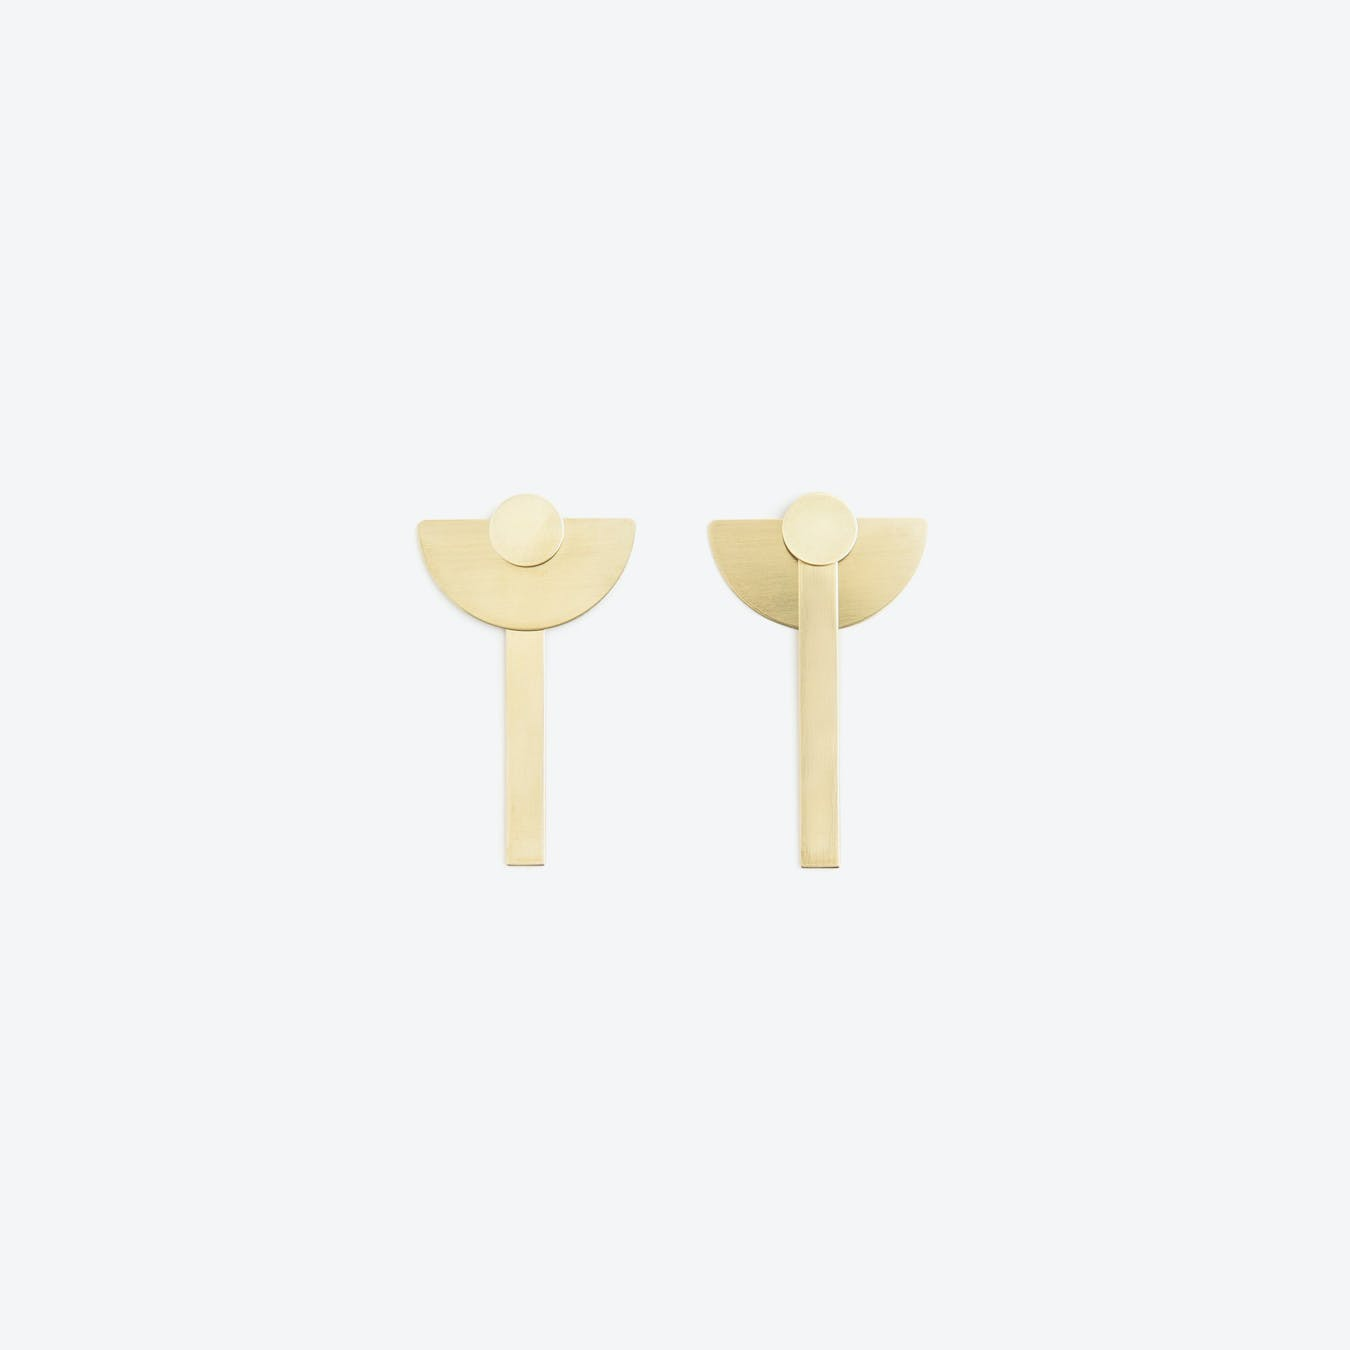 MOBIL Earrings N°1 / Brass